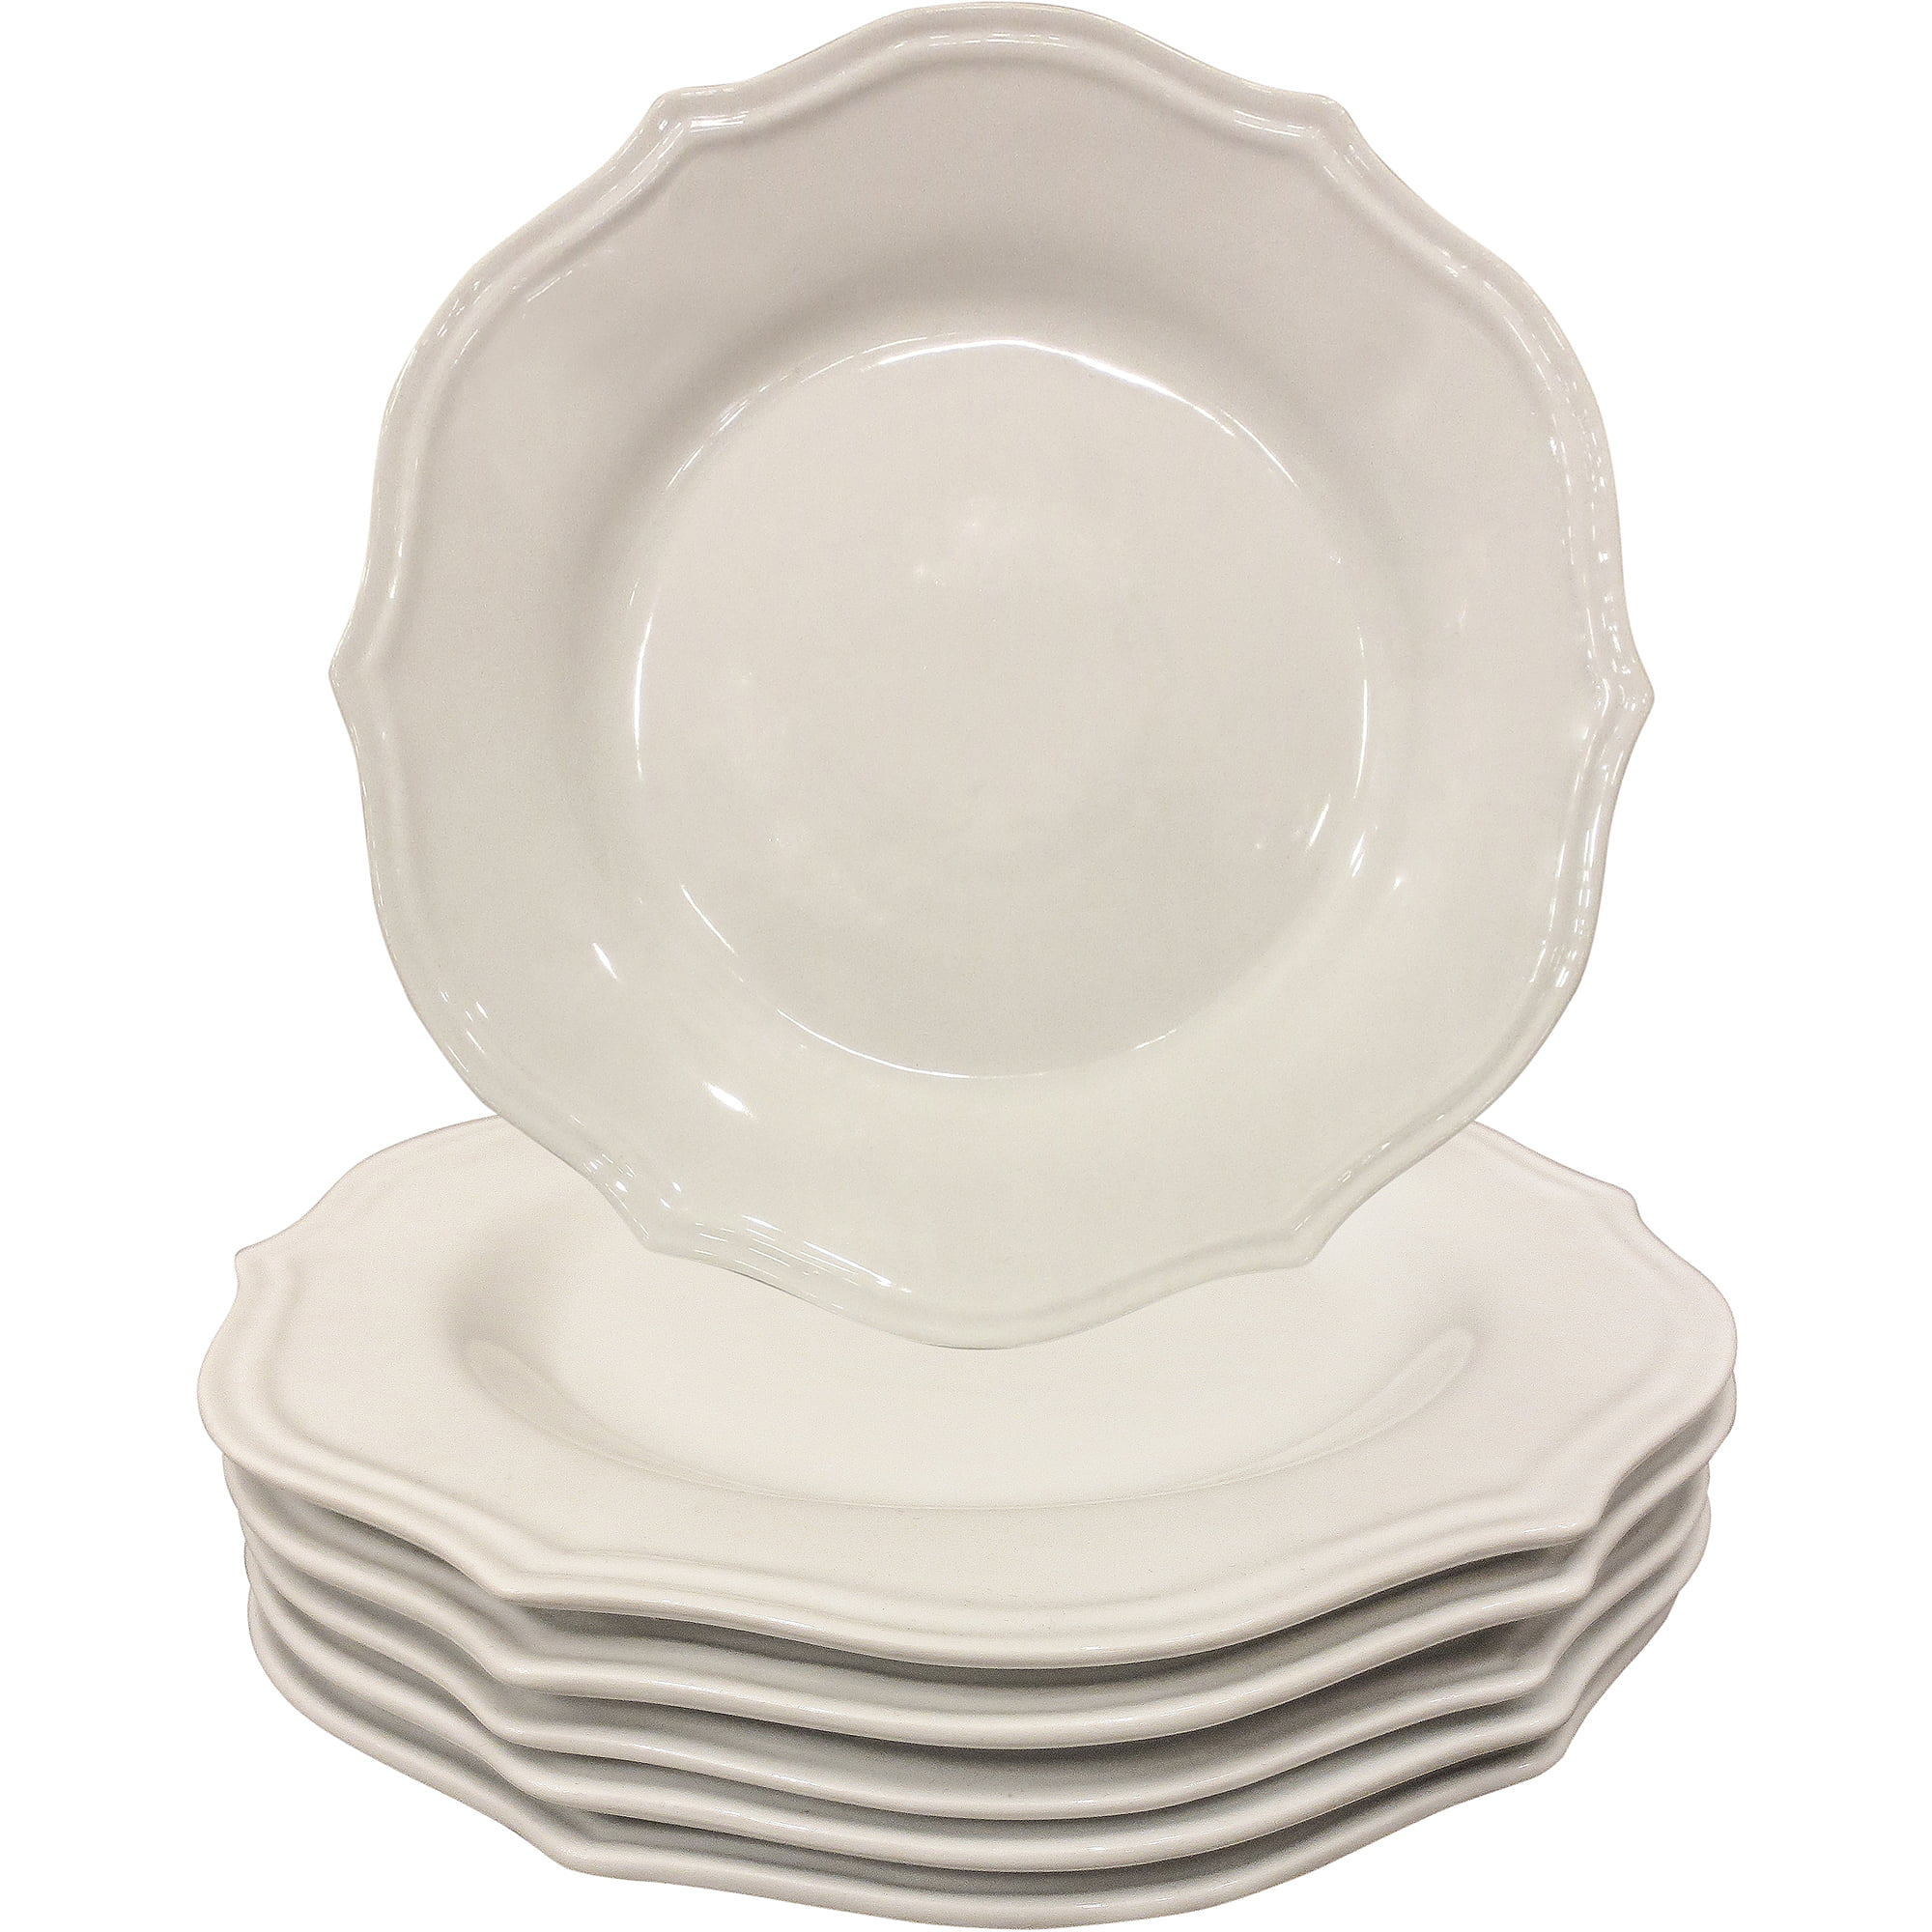 Better Homes and Gardens Scalloped Dinner Plates White Set of 6 - Walmart.com  sc 1 st  Walmart & Better Homes and Gardens Scalloped Dinner Plates White Set of 6 ...